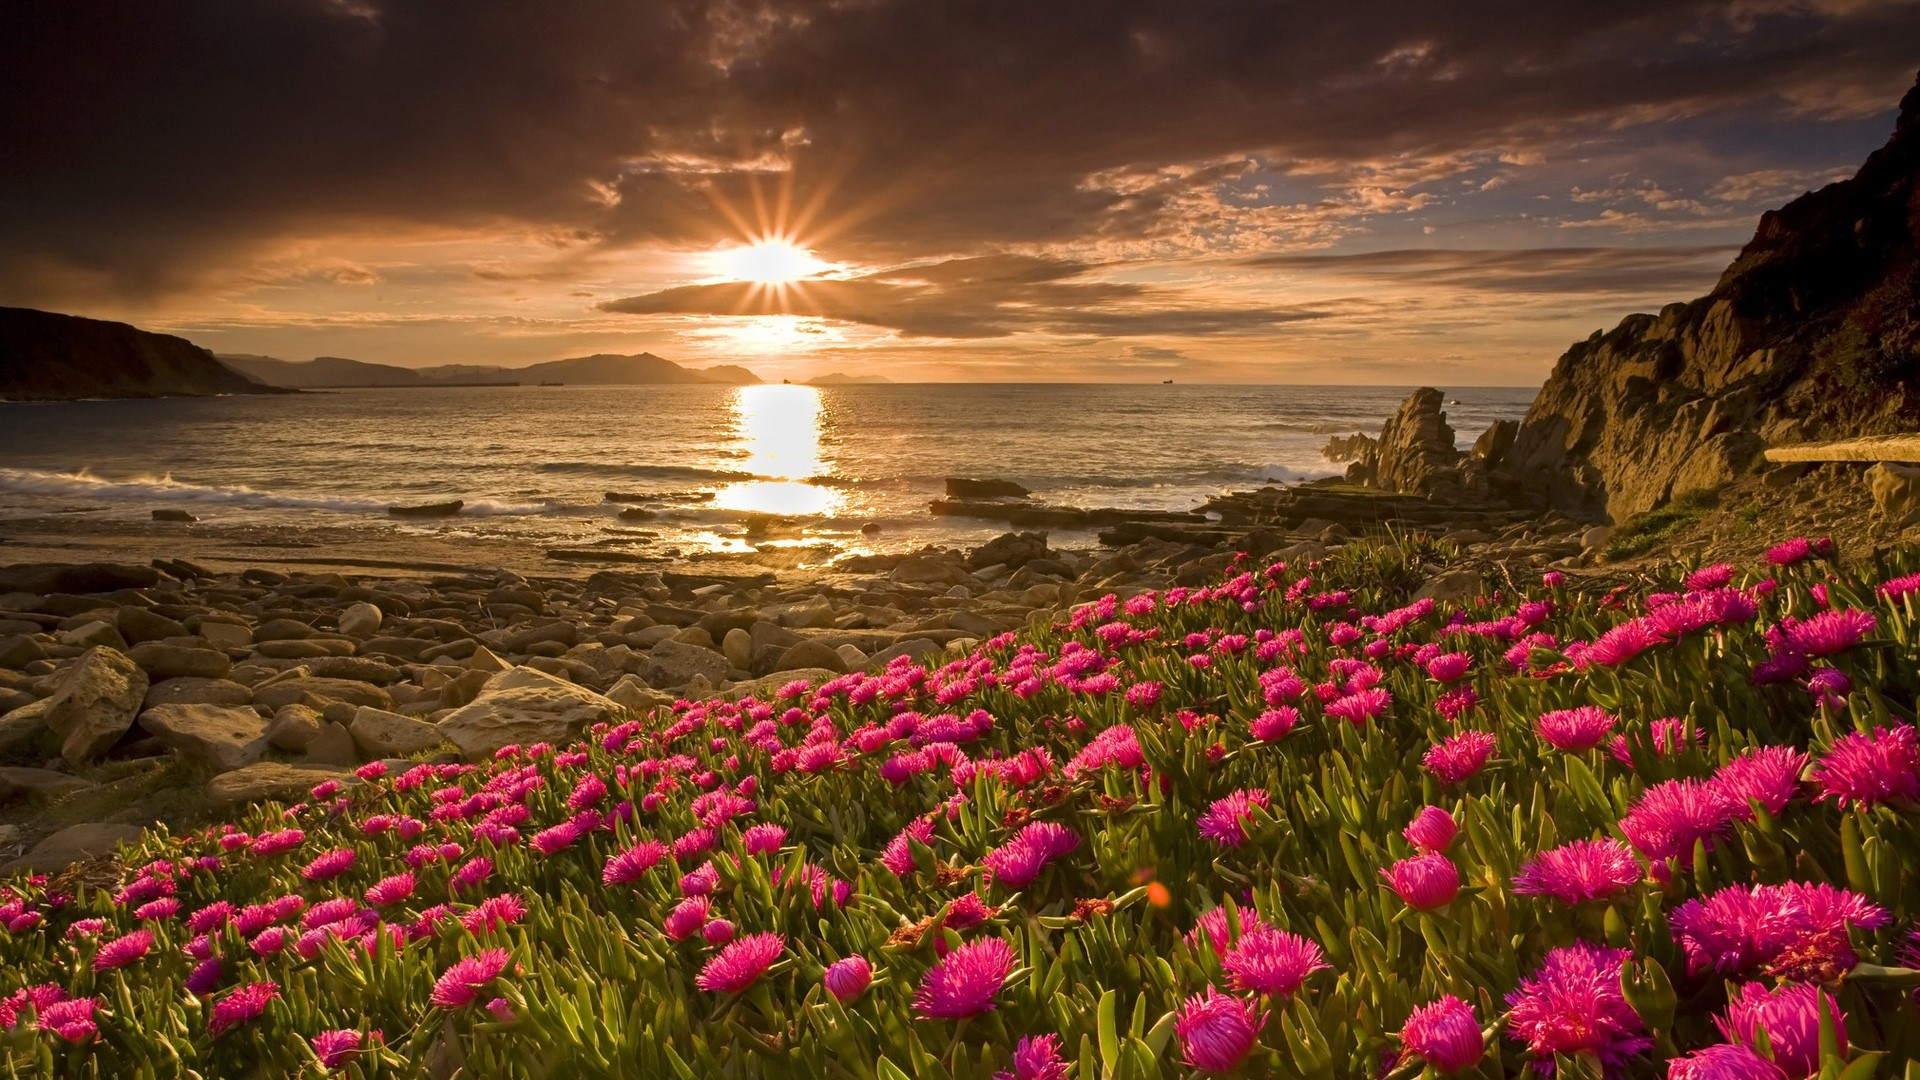 Flower landscape hd 29016 1920x1080 px for Flower landscape